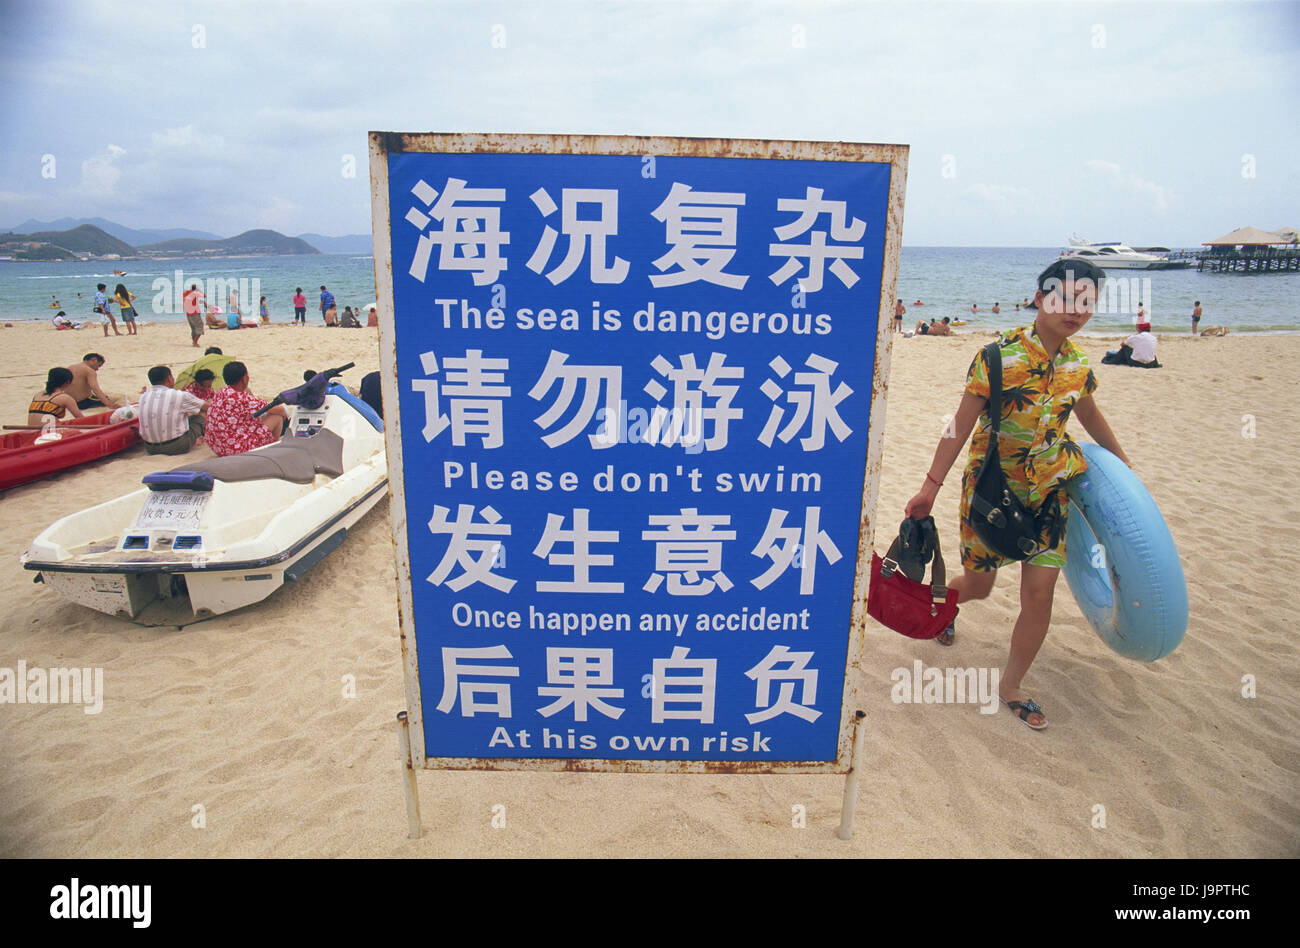 China,Hainan Iceland,Sanya,Dadonghai Beach,tourist,sign,Asia,Eastern Asia,destination,beach,sandy beach,person,vacationer,vacation,rest,beach - Stock Image